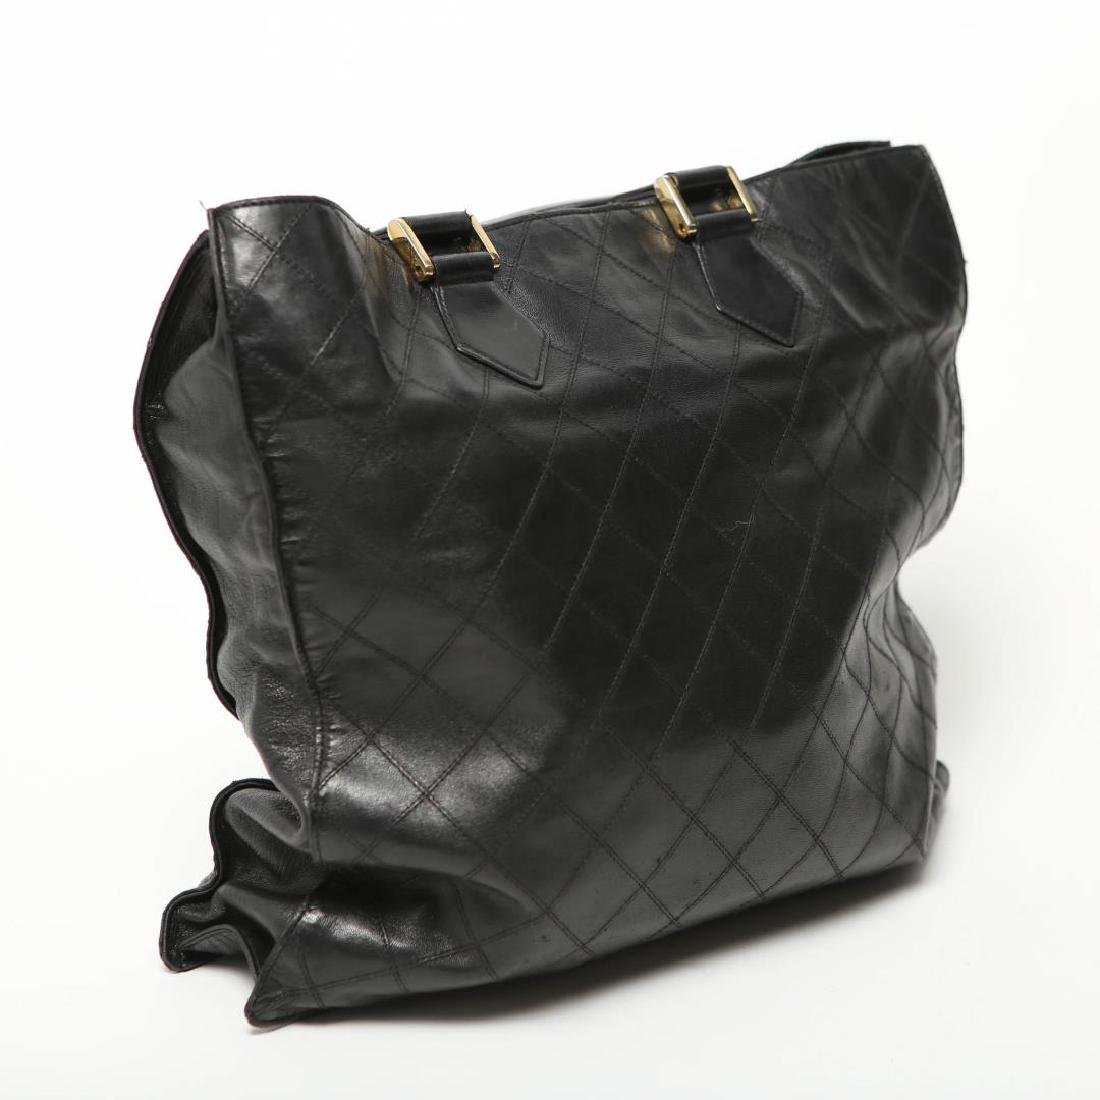 Vintage Chanel Tote Bag, Black Leather